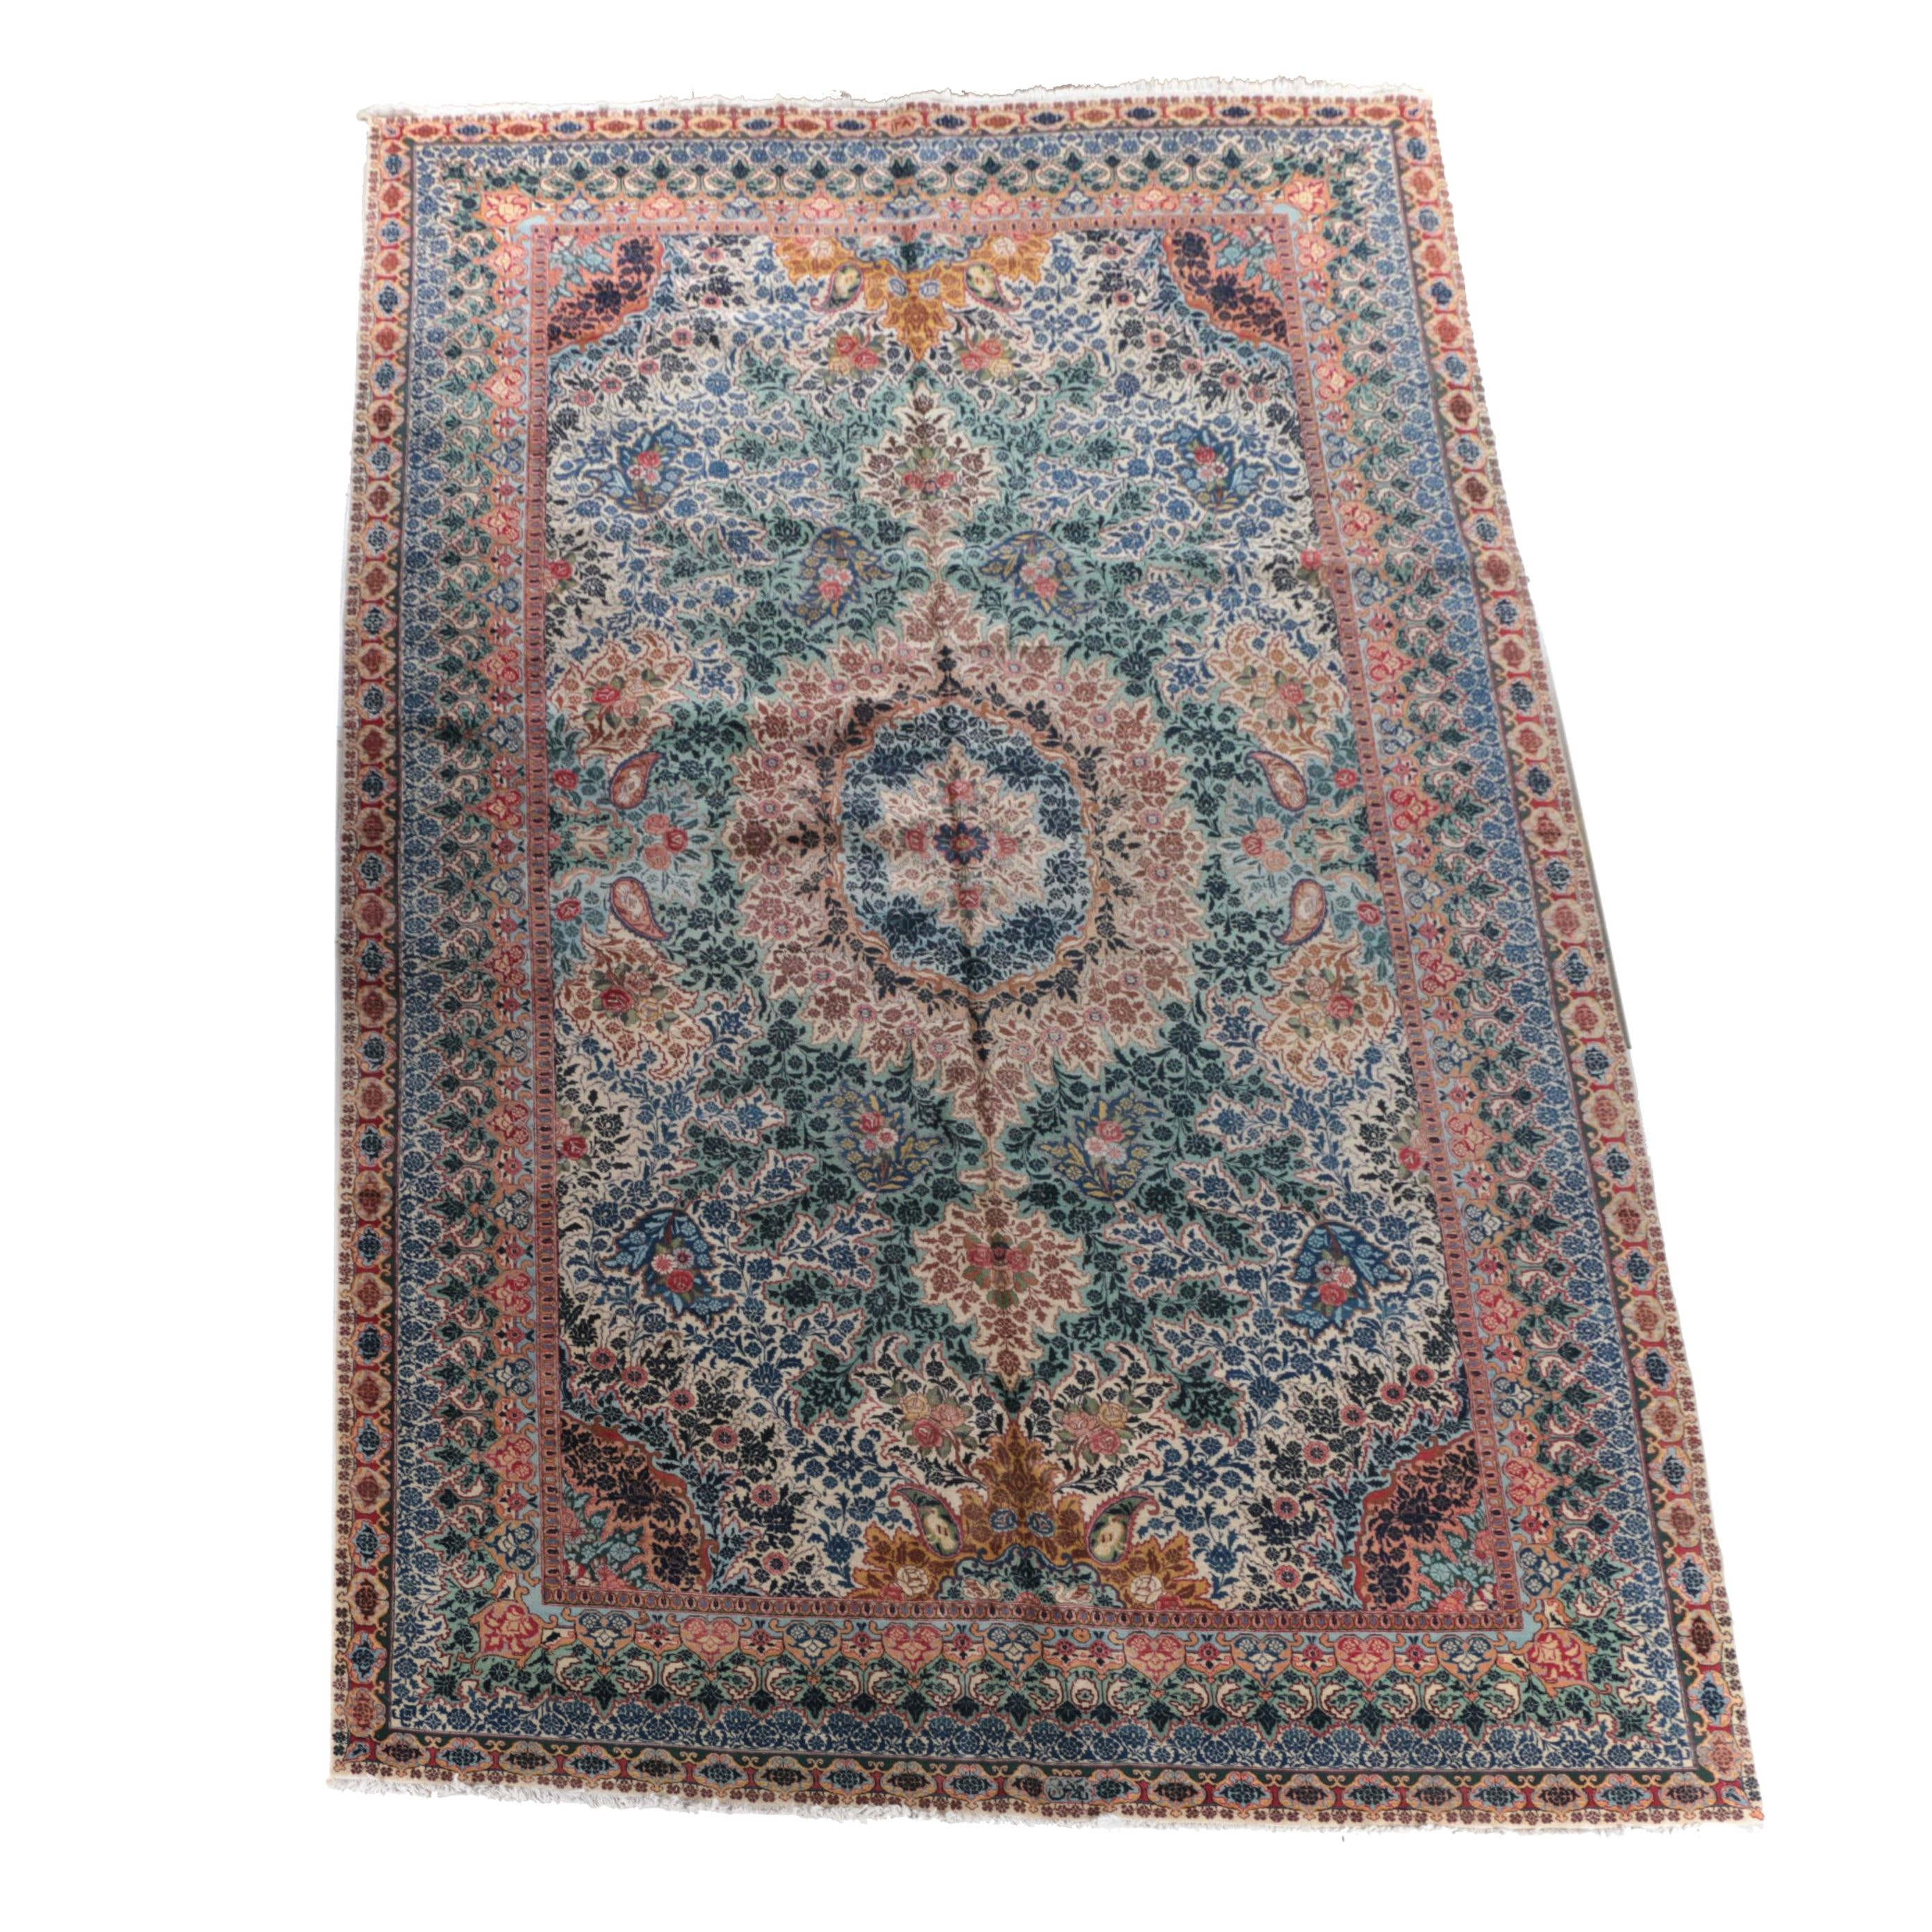 Exceptional Antique Signed Hand-Knotted Dorokhsh Mashhad Palace Rug